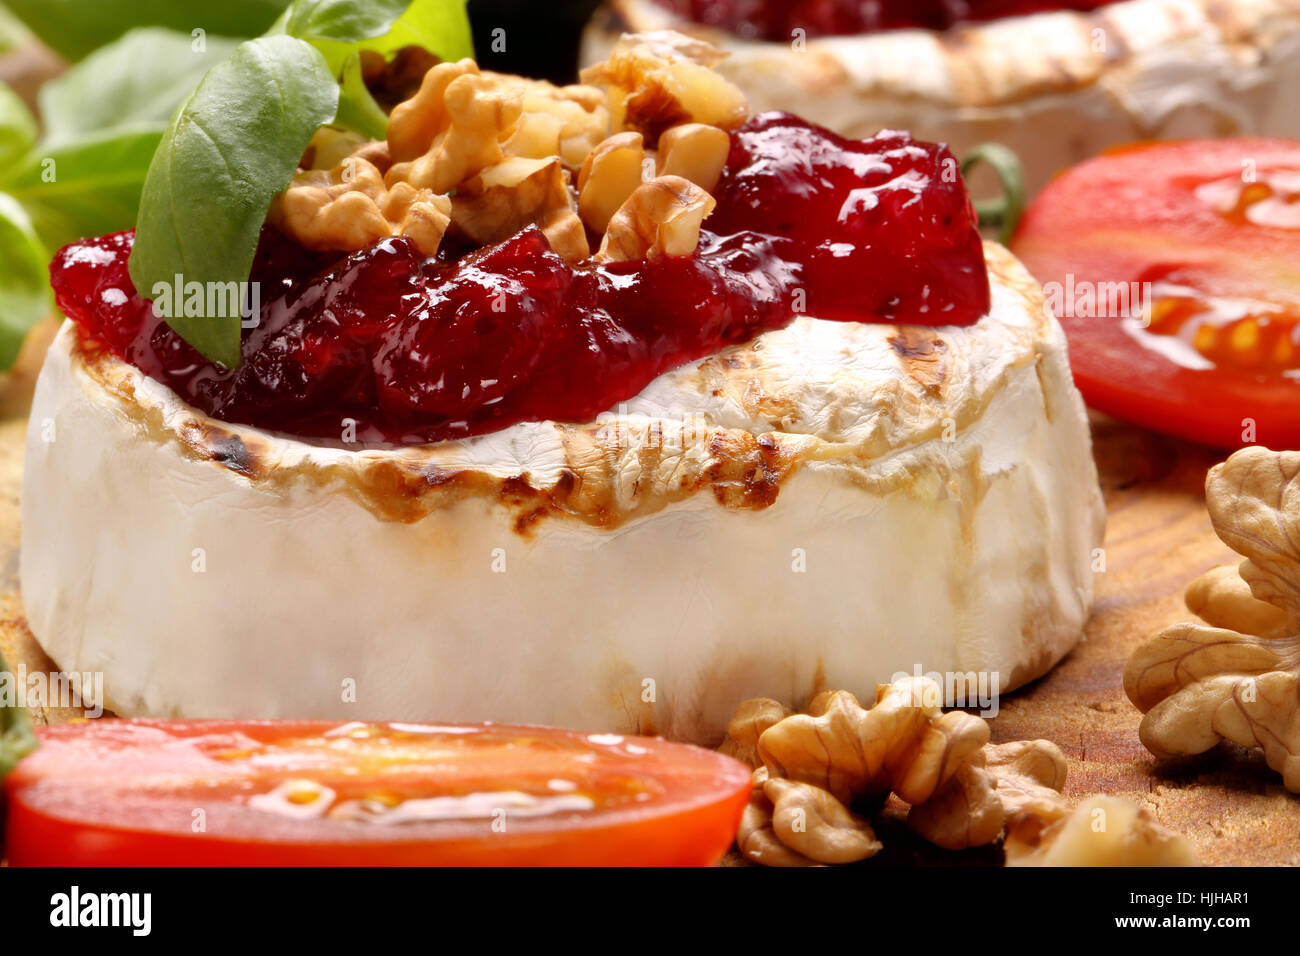 Grilled brie cheese with cranberry jam and walnuts on old wooden background - Stock Image